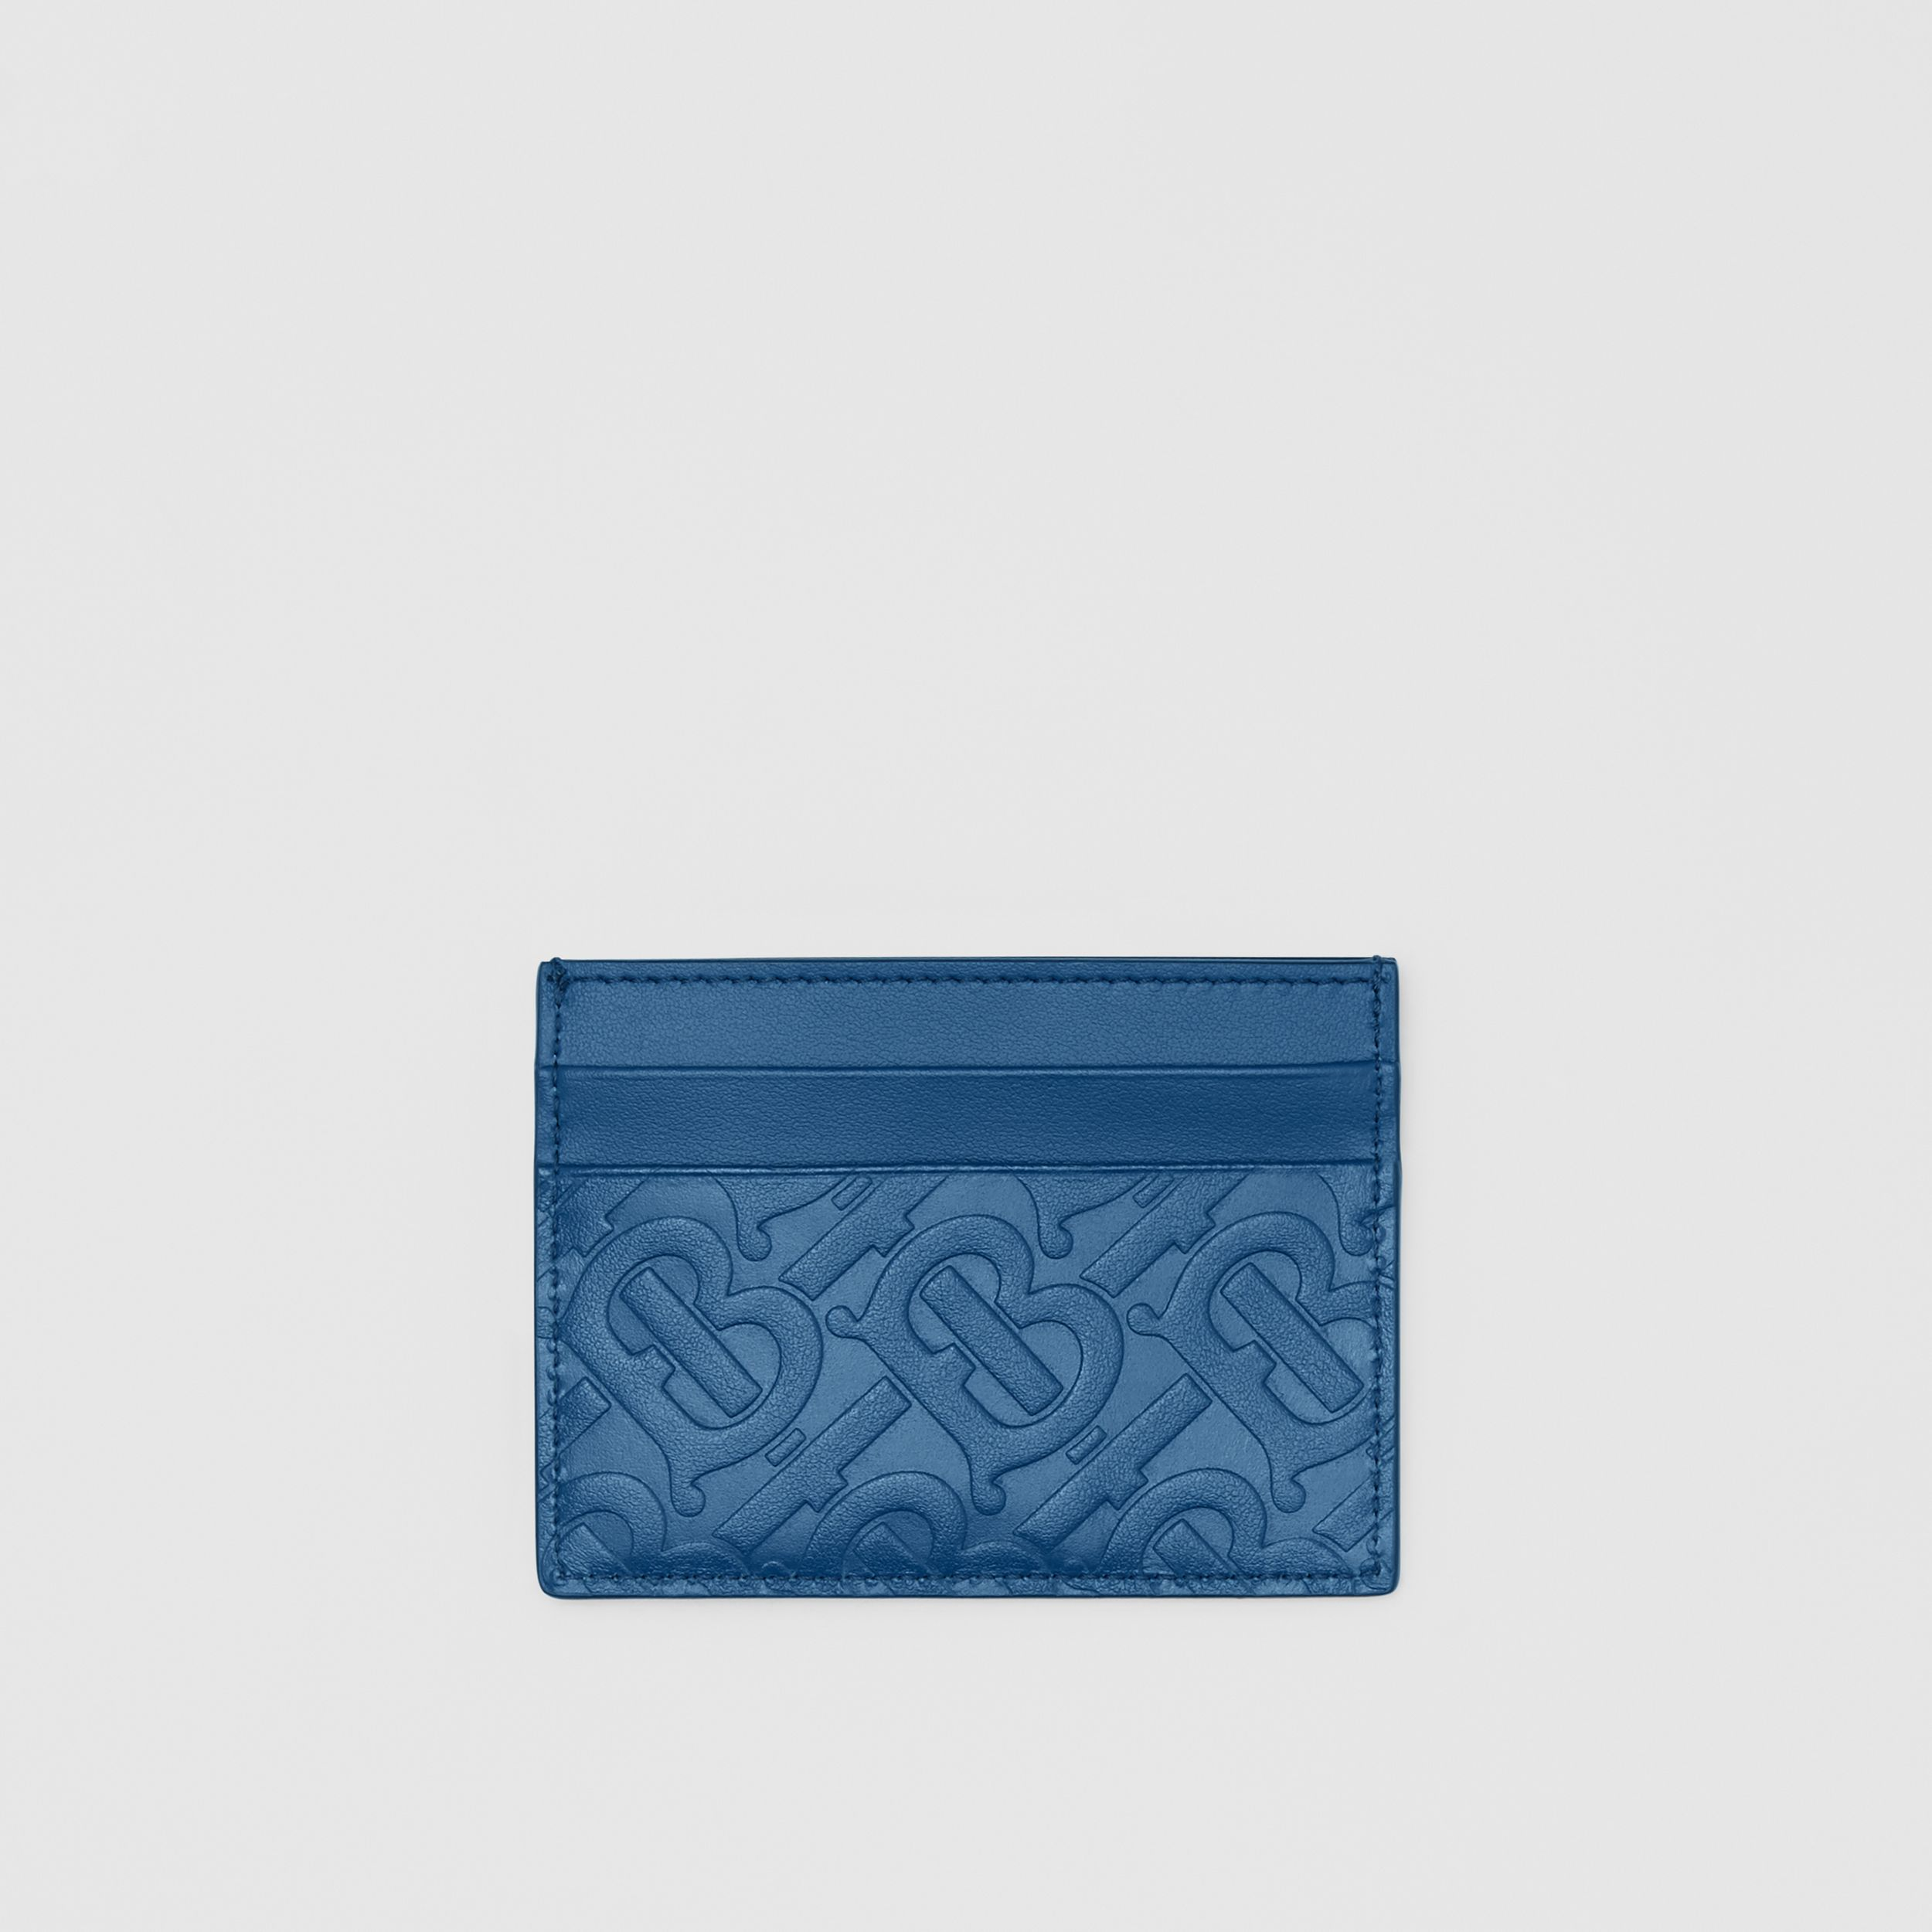 Monogram Leather Card Case in Pale Canvas Blue - Men | Burberry - 1